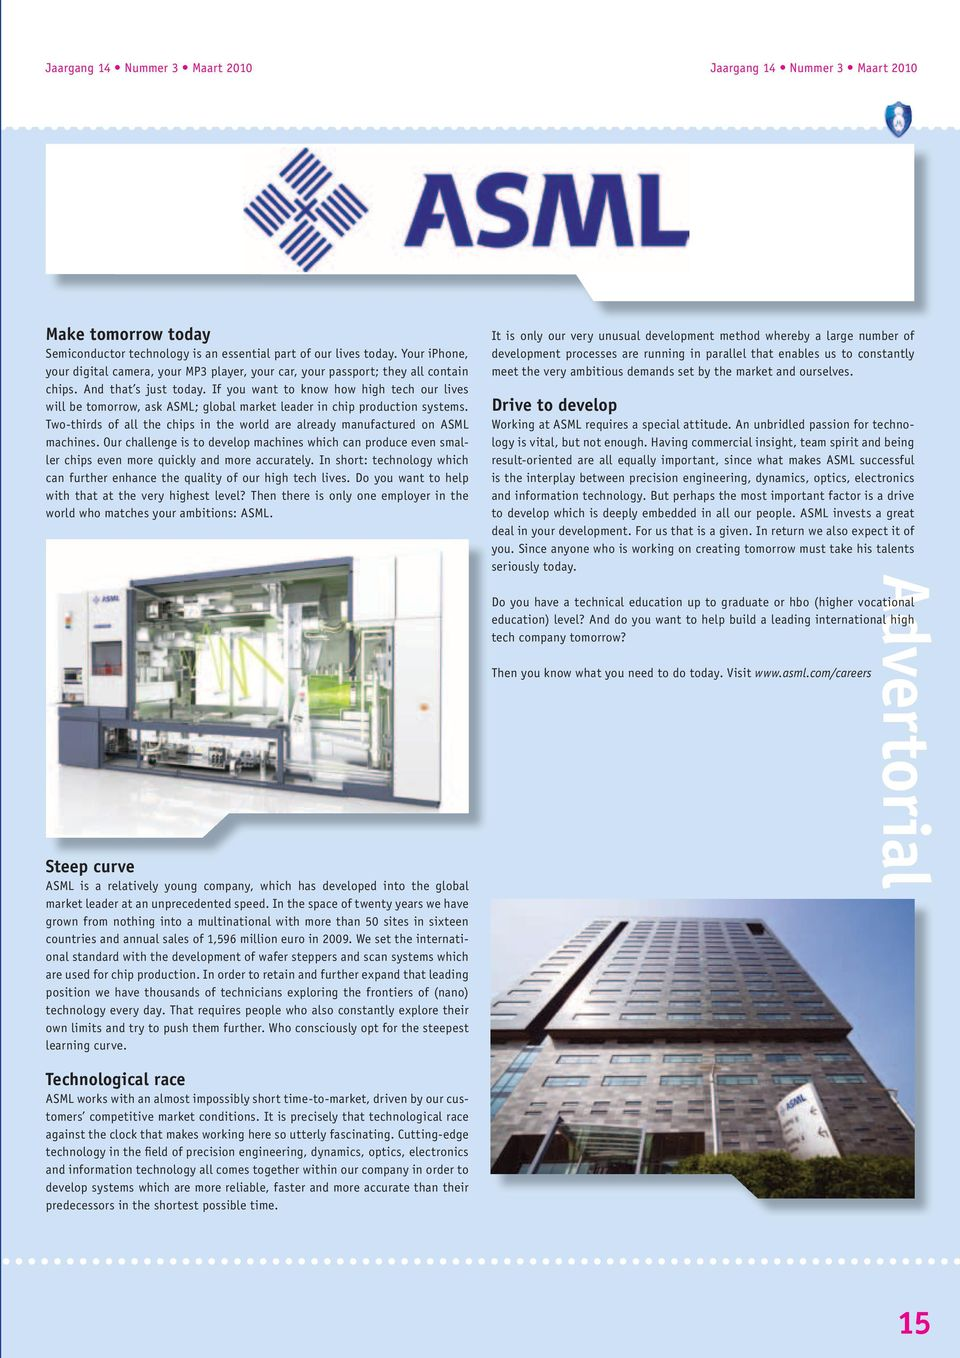 If you want to know how high tech our lives will be tomorrow, ask ASML; global market leader in chip production systems.